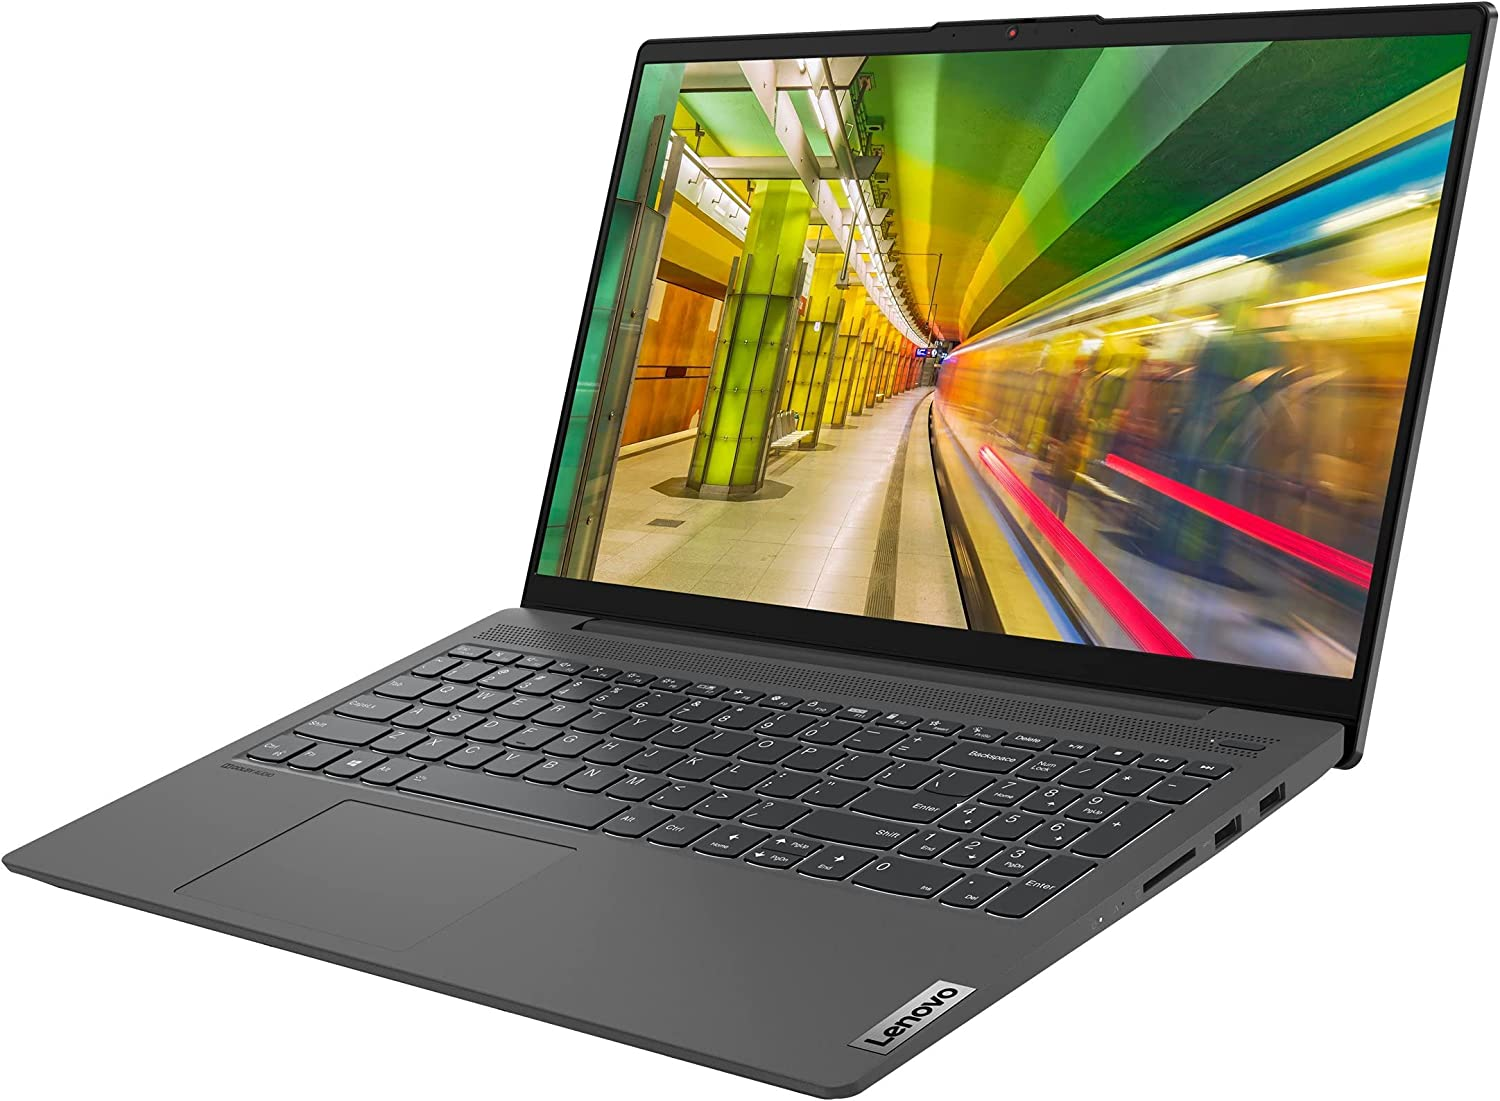 9 Best Laptops for Stock Trading in 2021 [Expert Recommendations]